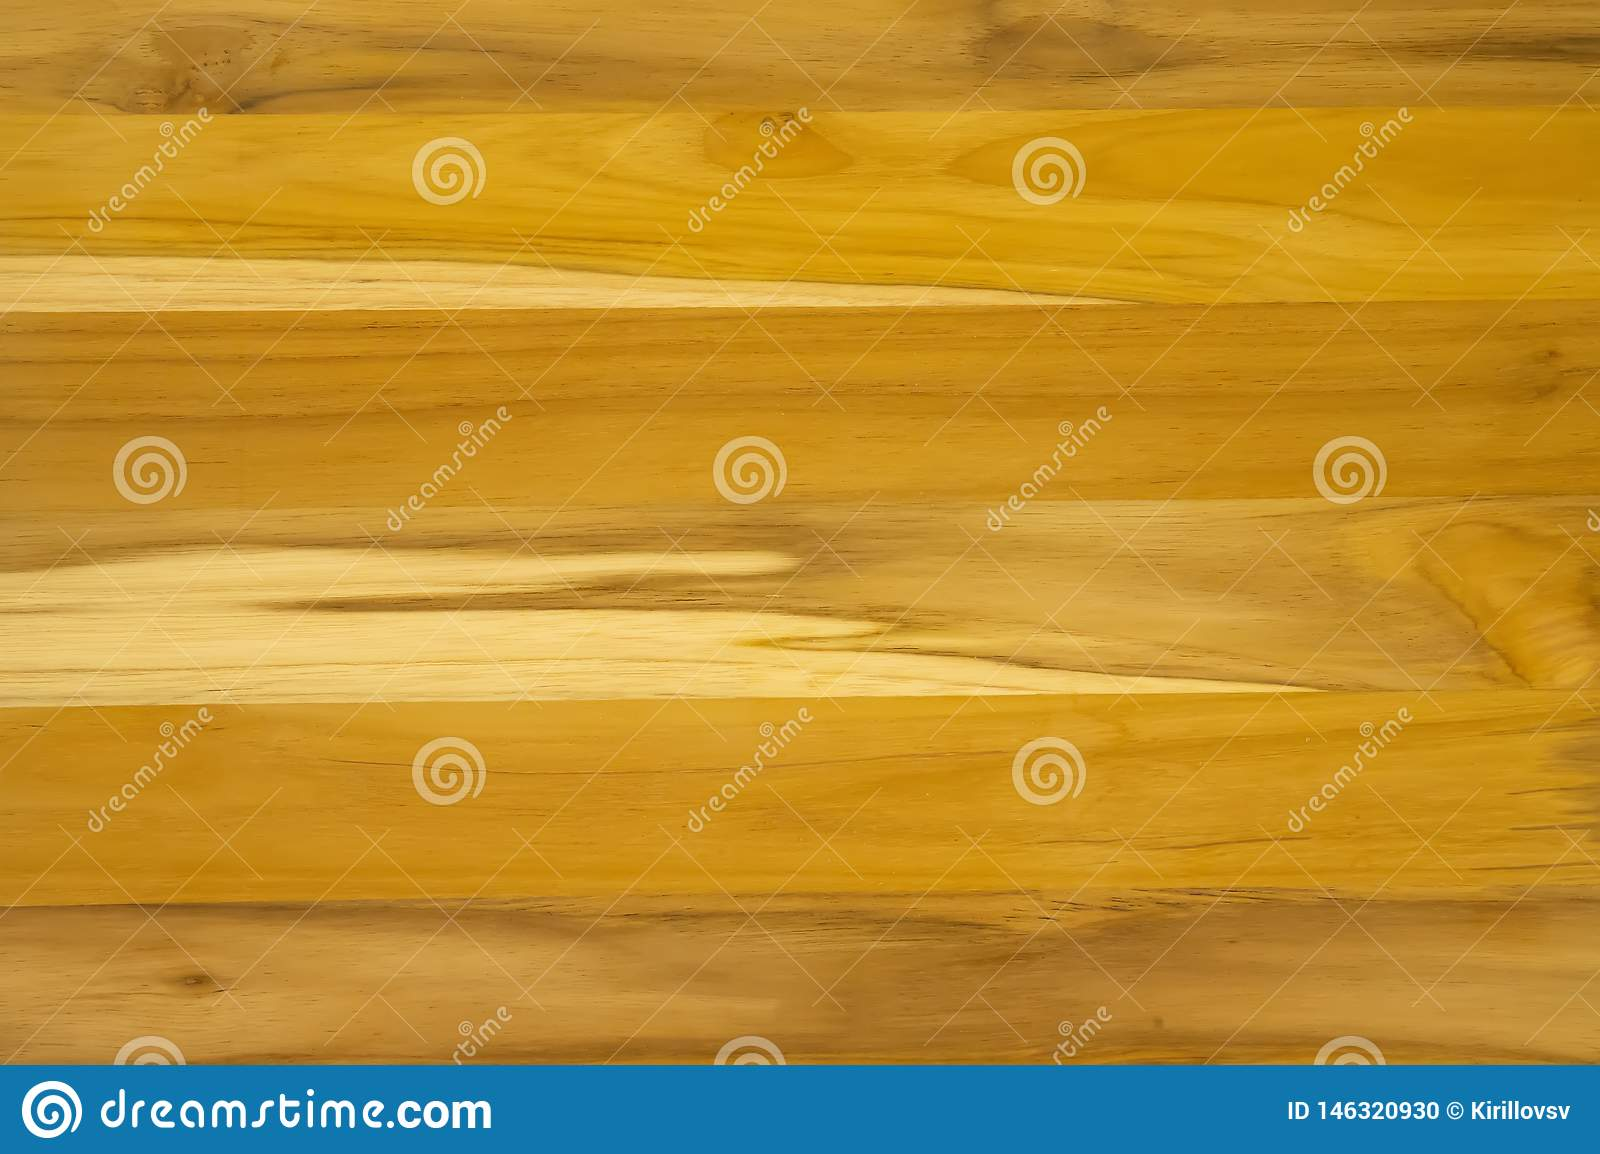 Background wood structure